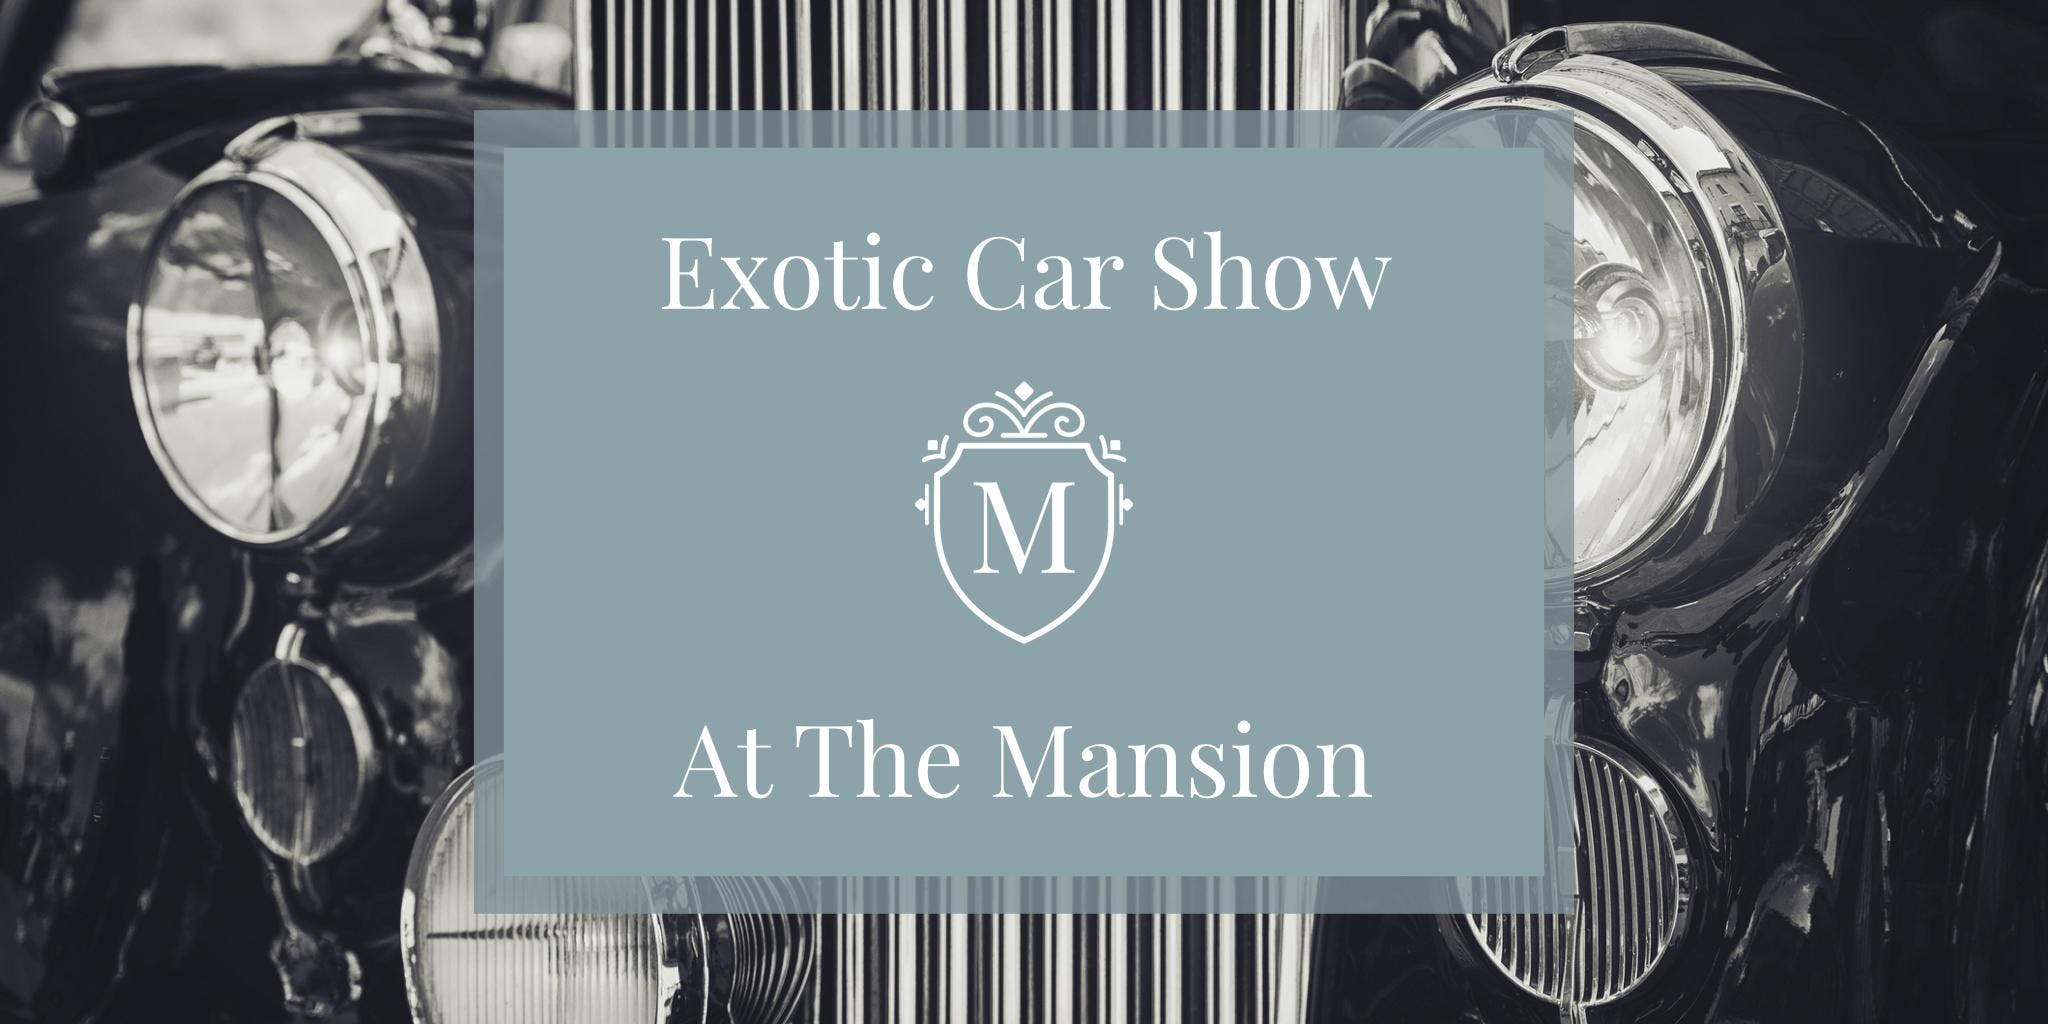 Exotic Car Show At The Mansion Glen Cove